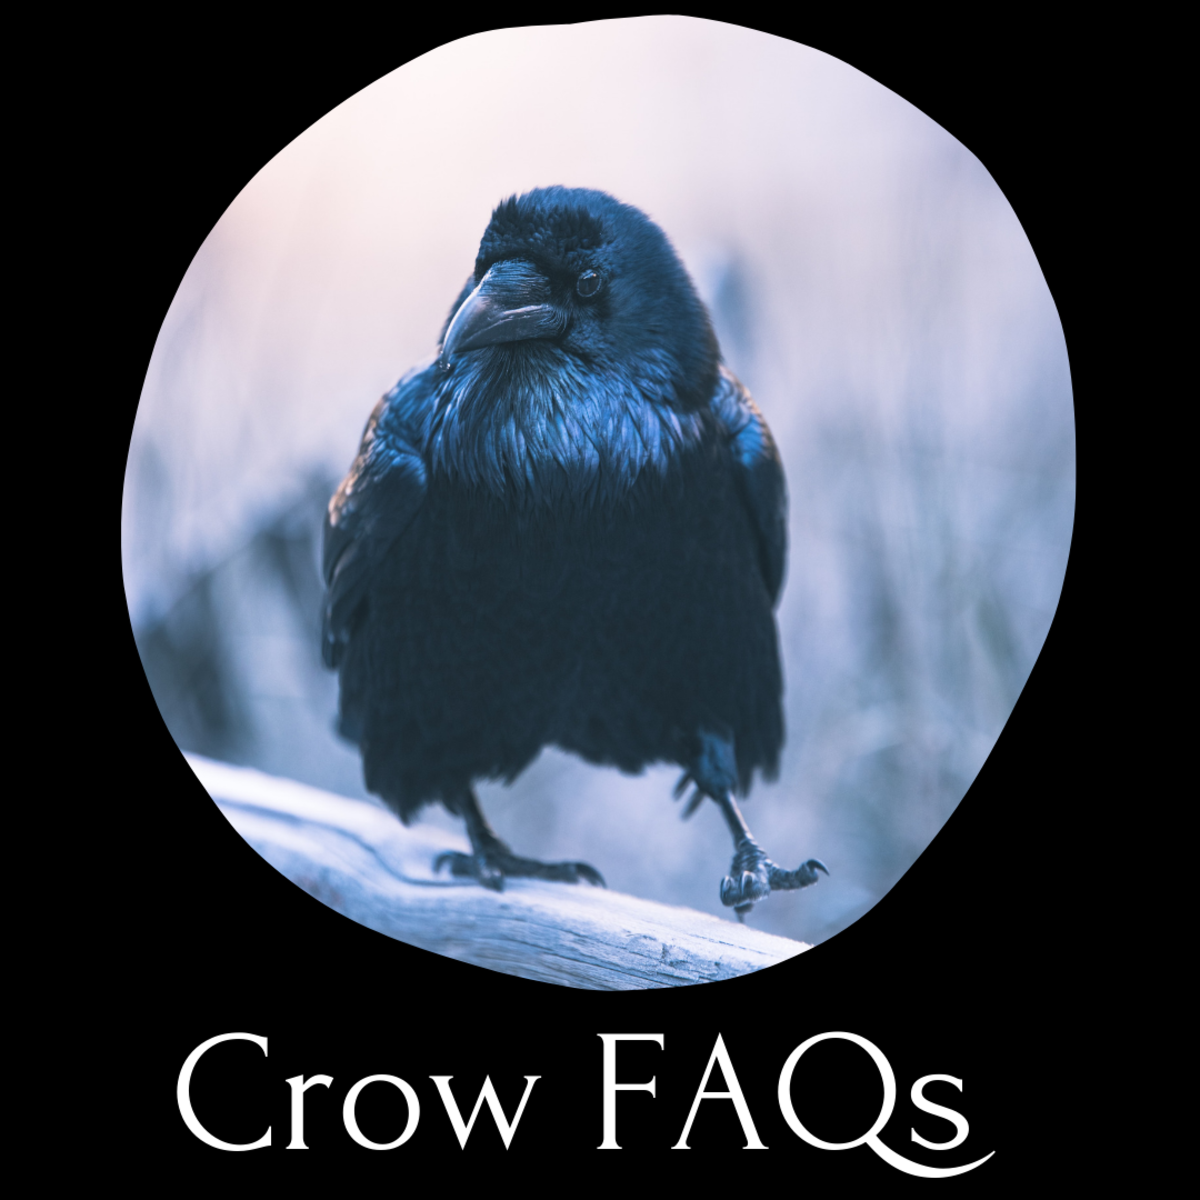 Wondering what crows eat or whether you can keep one as a pet? Read on.